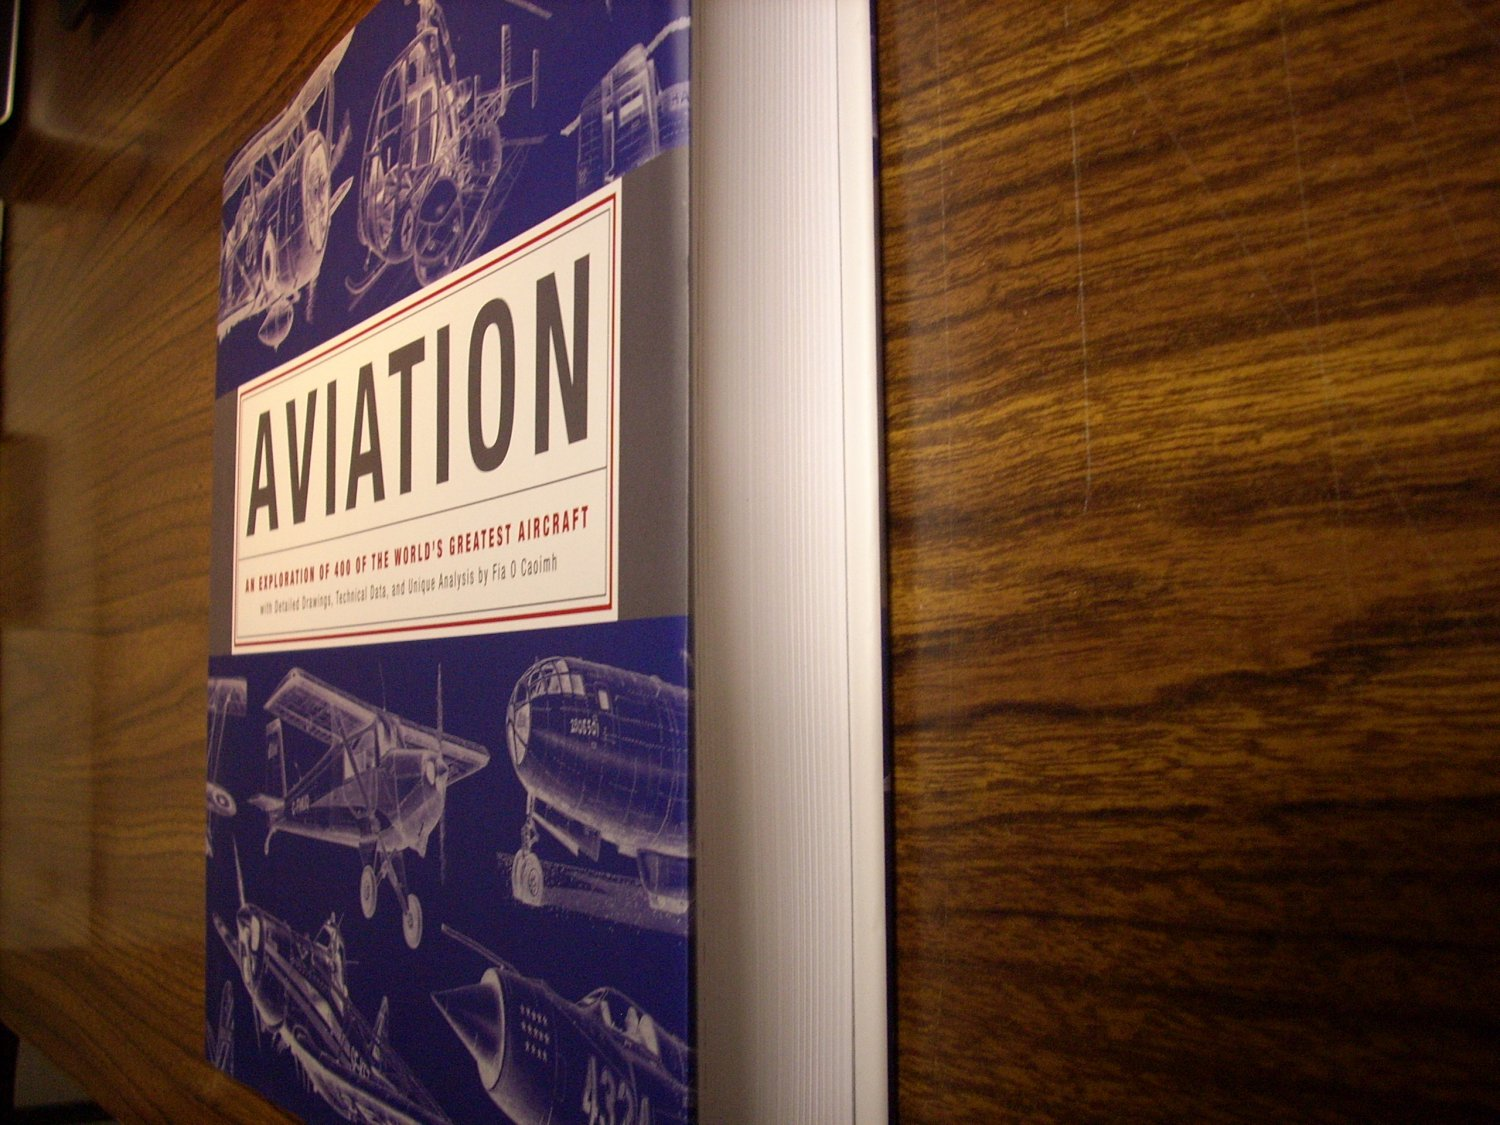 Aviation: An Exploration of 400 of the World's Greatest Aircraft